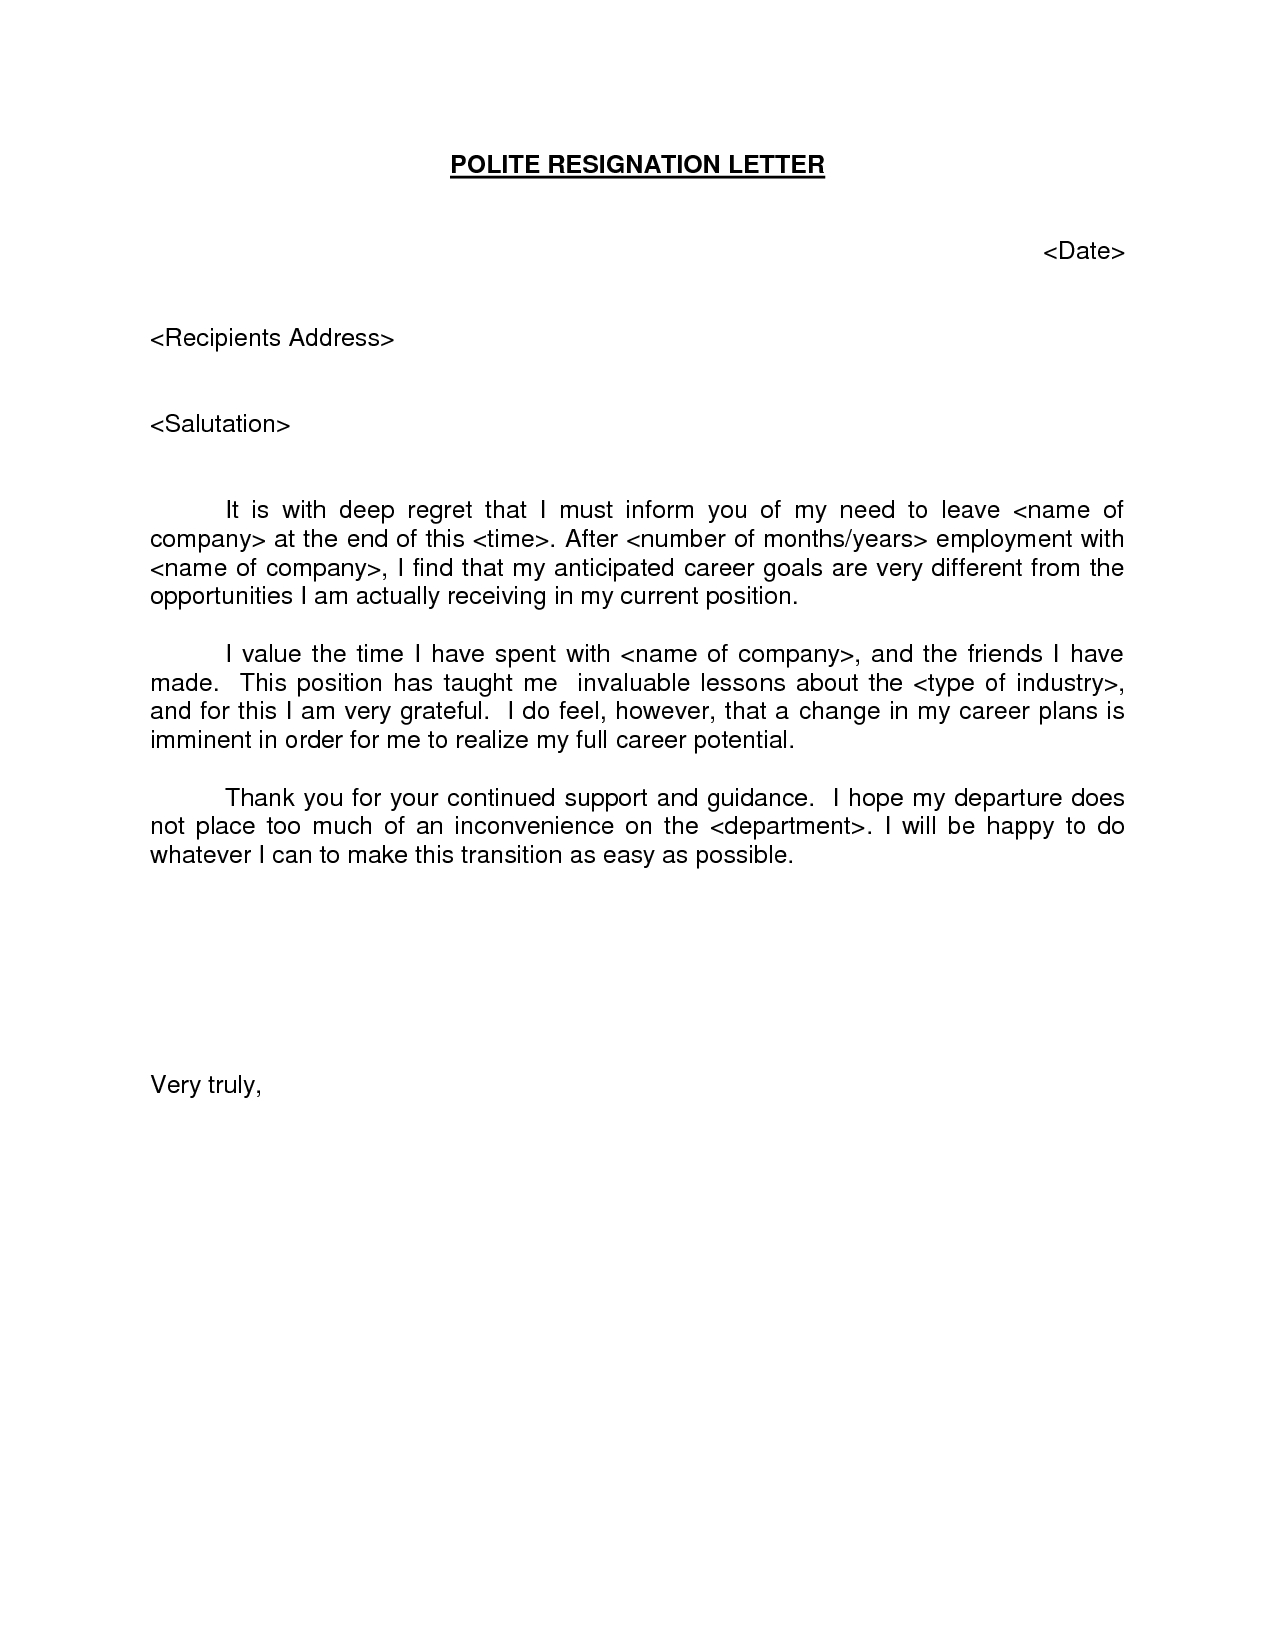 microsoft office resignation letter template example-POLITE RESIGNATION LETTER BestdealformoneyWriting A Letter Resignation Email Letter Sample 17-p